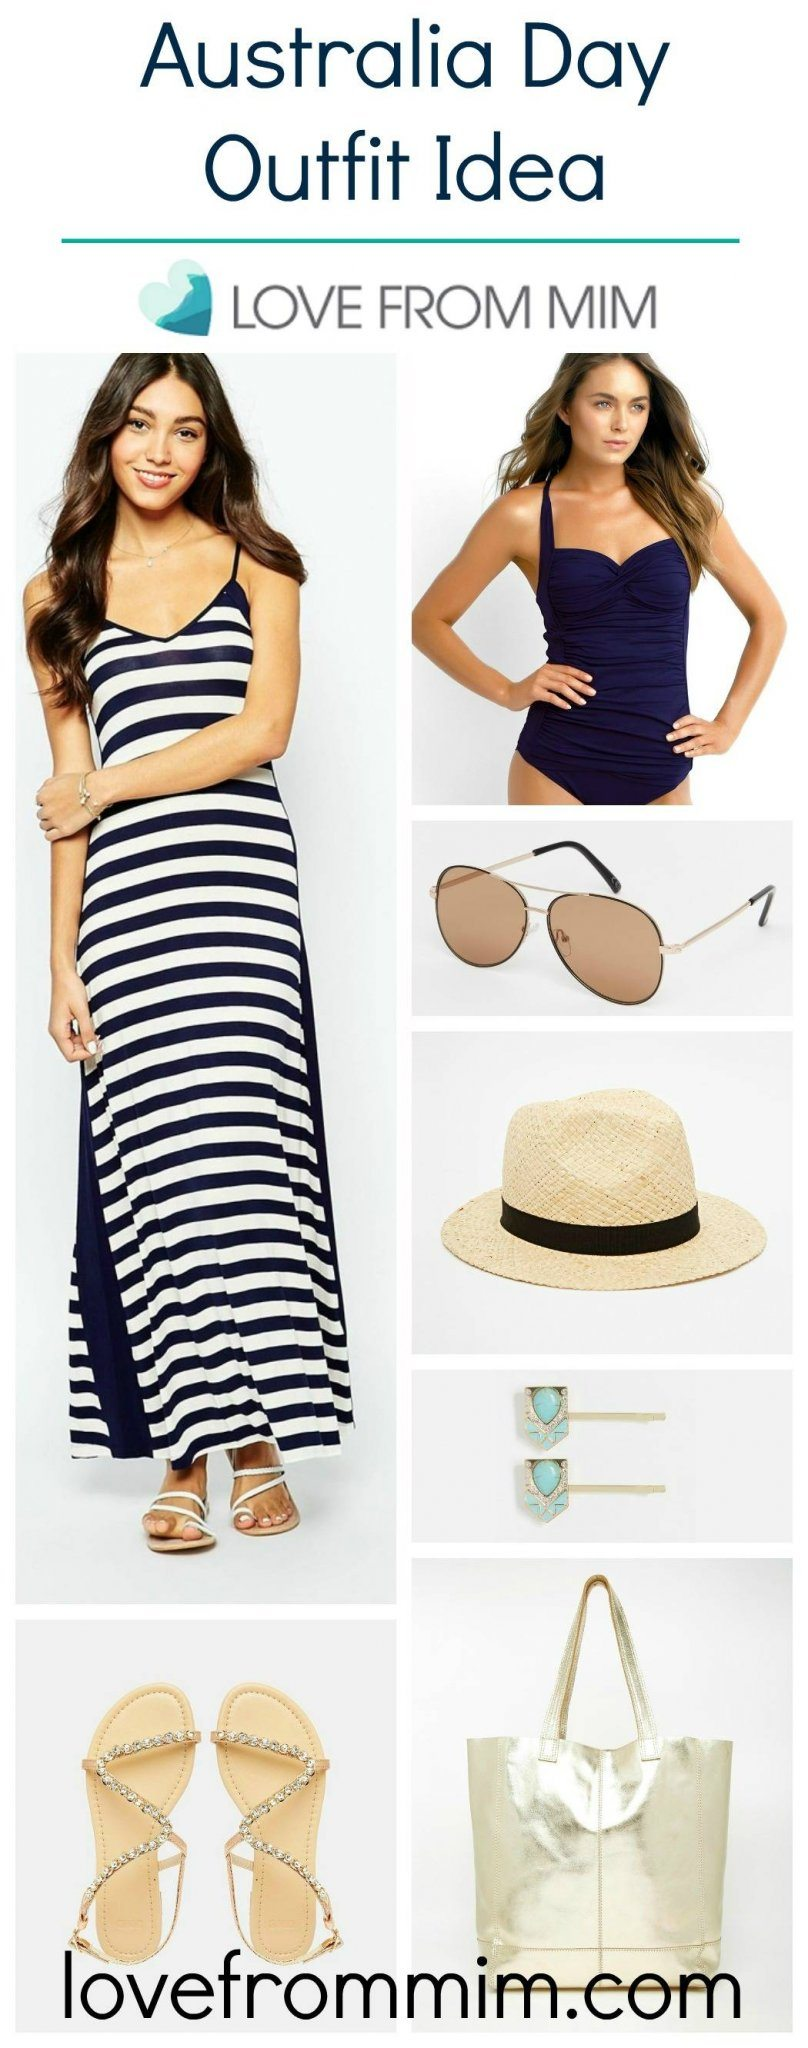 Australia Day Outfit Idea - www.lovefrommim.com Navy Blue and White Maxi Dress Straw Trilby Aviators Gold Bag Gold Sandals Navy Seafolly Goddess Tankini